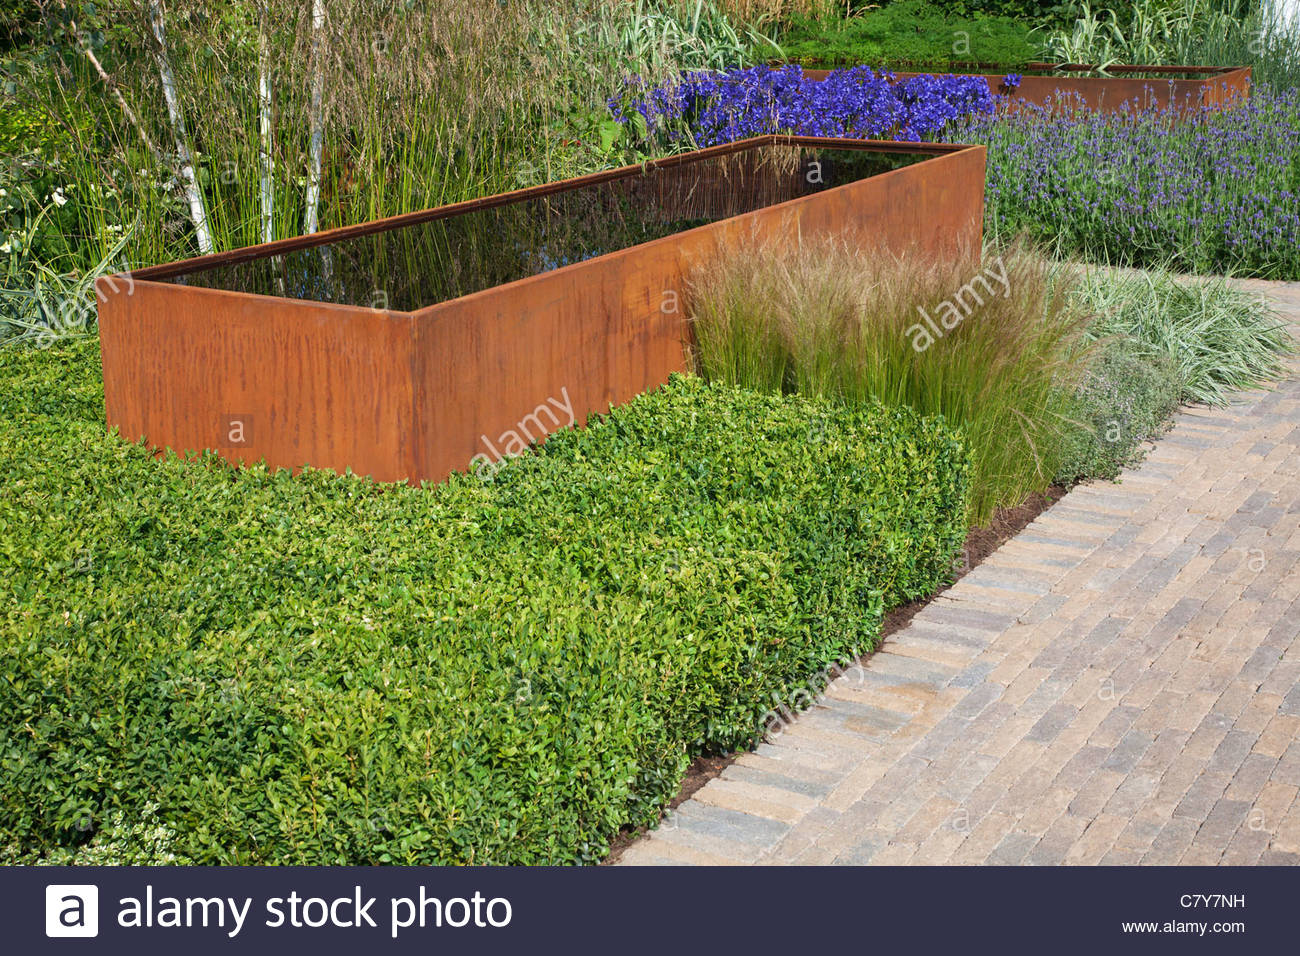 Contemporary Garden With Rusted Corten Steel Water Trough And Green Foliage  Planting. RHS Hampton Court Flower Show